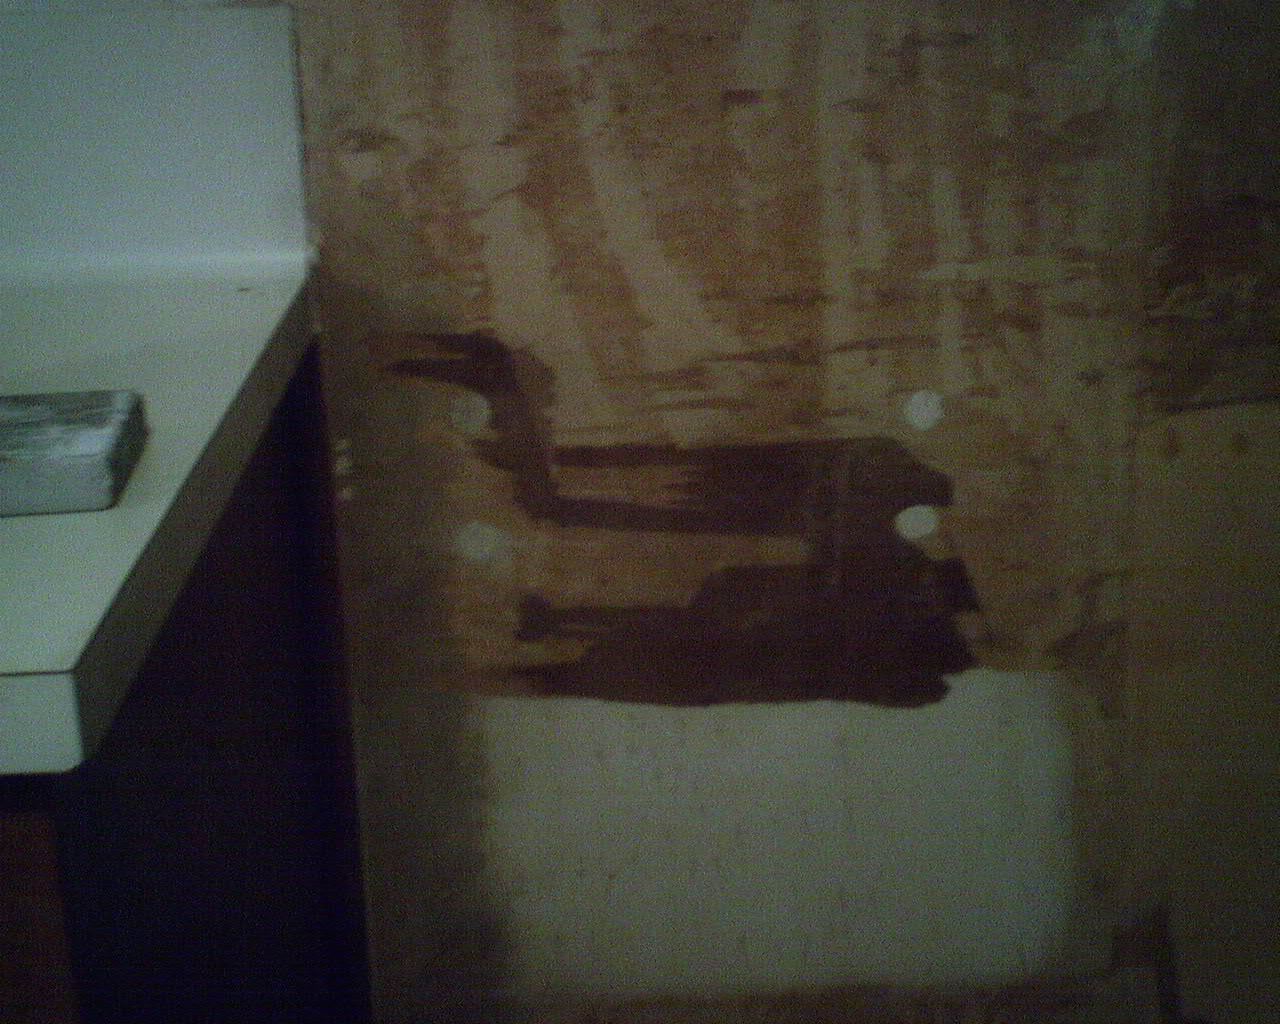 How to remove wallpaper paste from sheetrock - No Primer Under Wallpaper Torn Drywall